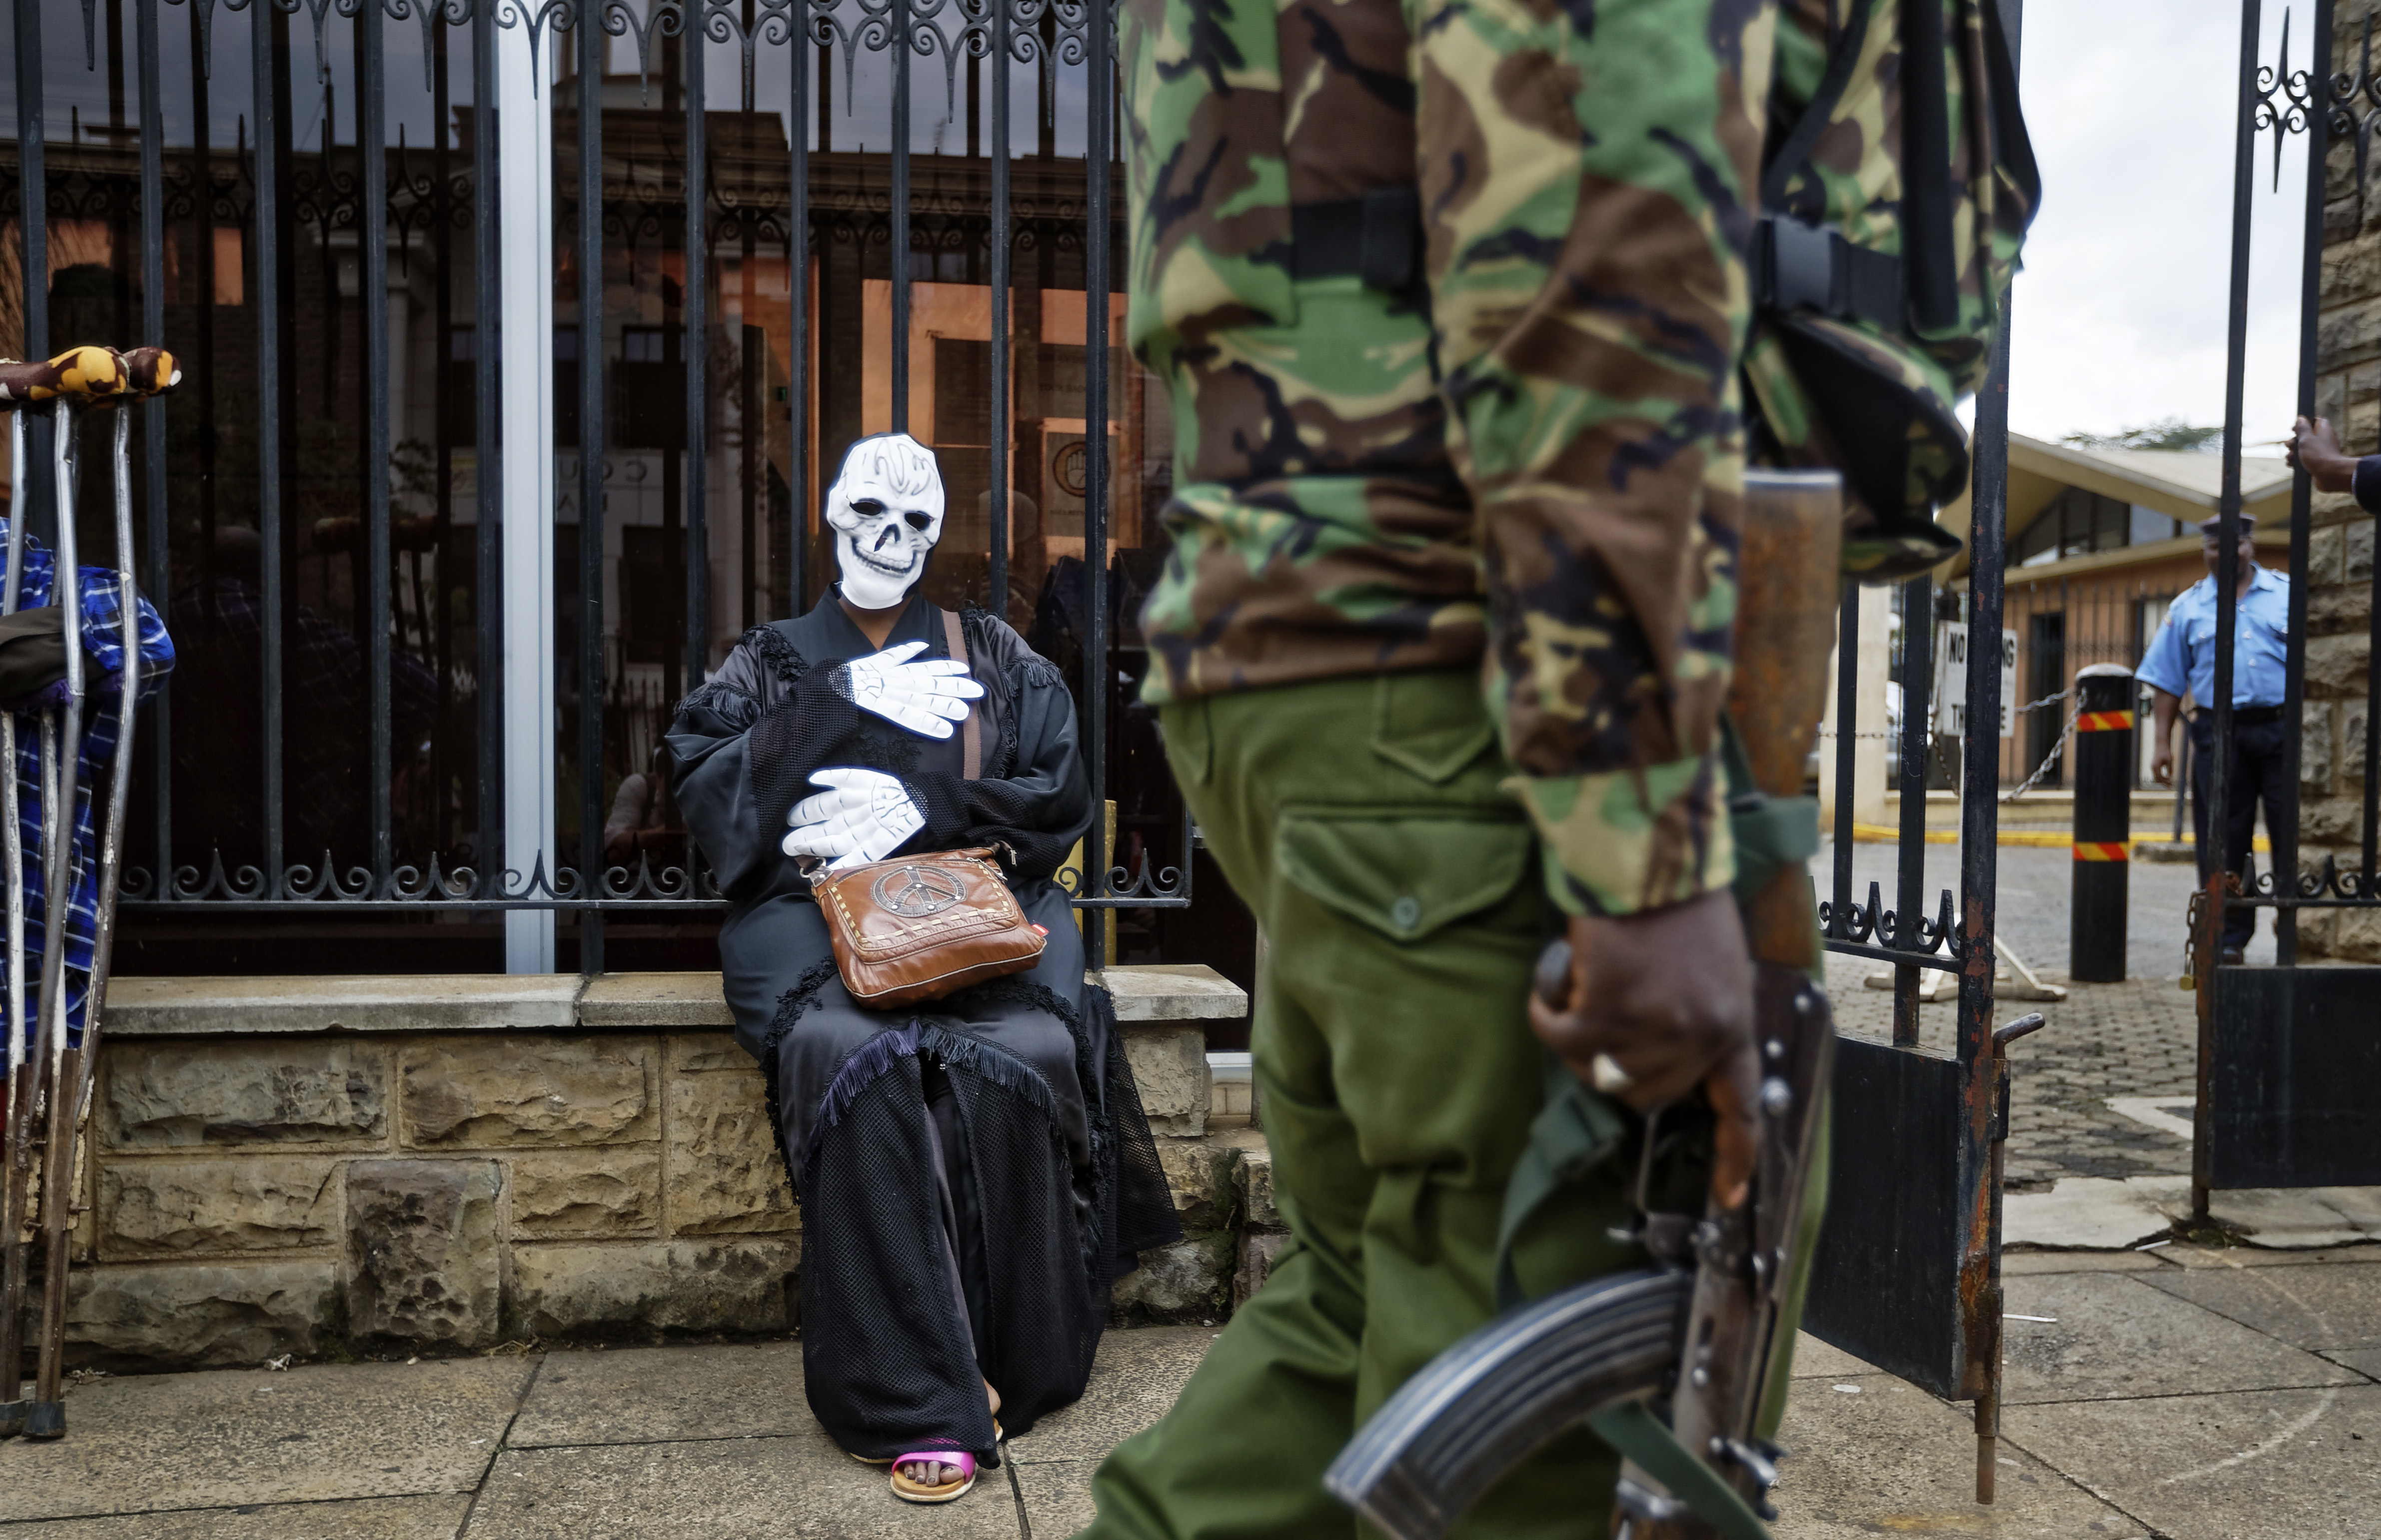 An armed police officer walks past an environmental protester wearing a skeleton costume as she demonstrates outside parliament against recent government plans to mine coal and open a coal-fired power plant, in downtown Nairobi, Kenya Tuesday, June 5, 2018. Kenyan activists protested plans for the joint venture between the Kenyan and Chinese governments in Lamu County, saying it will have devastating effect on the environment and health of local populations.